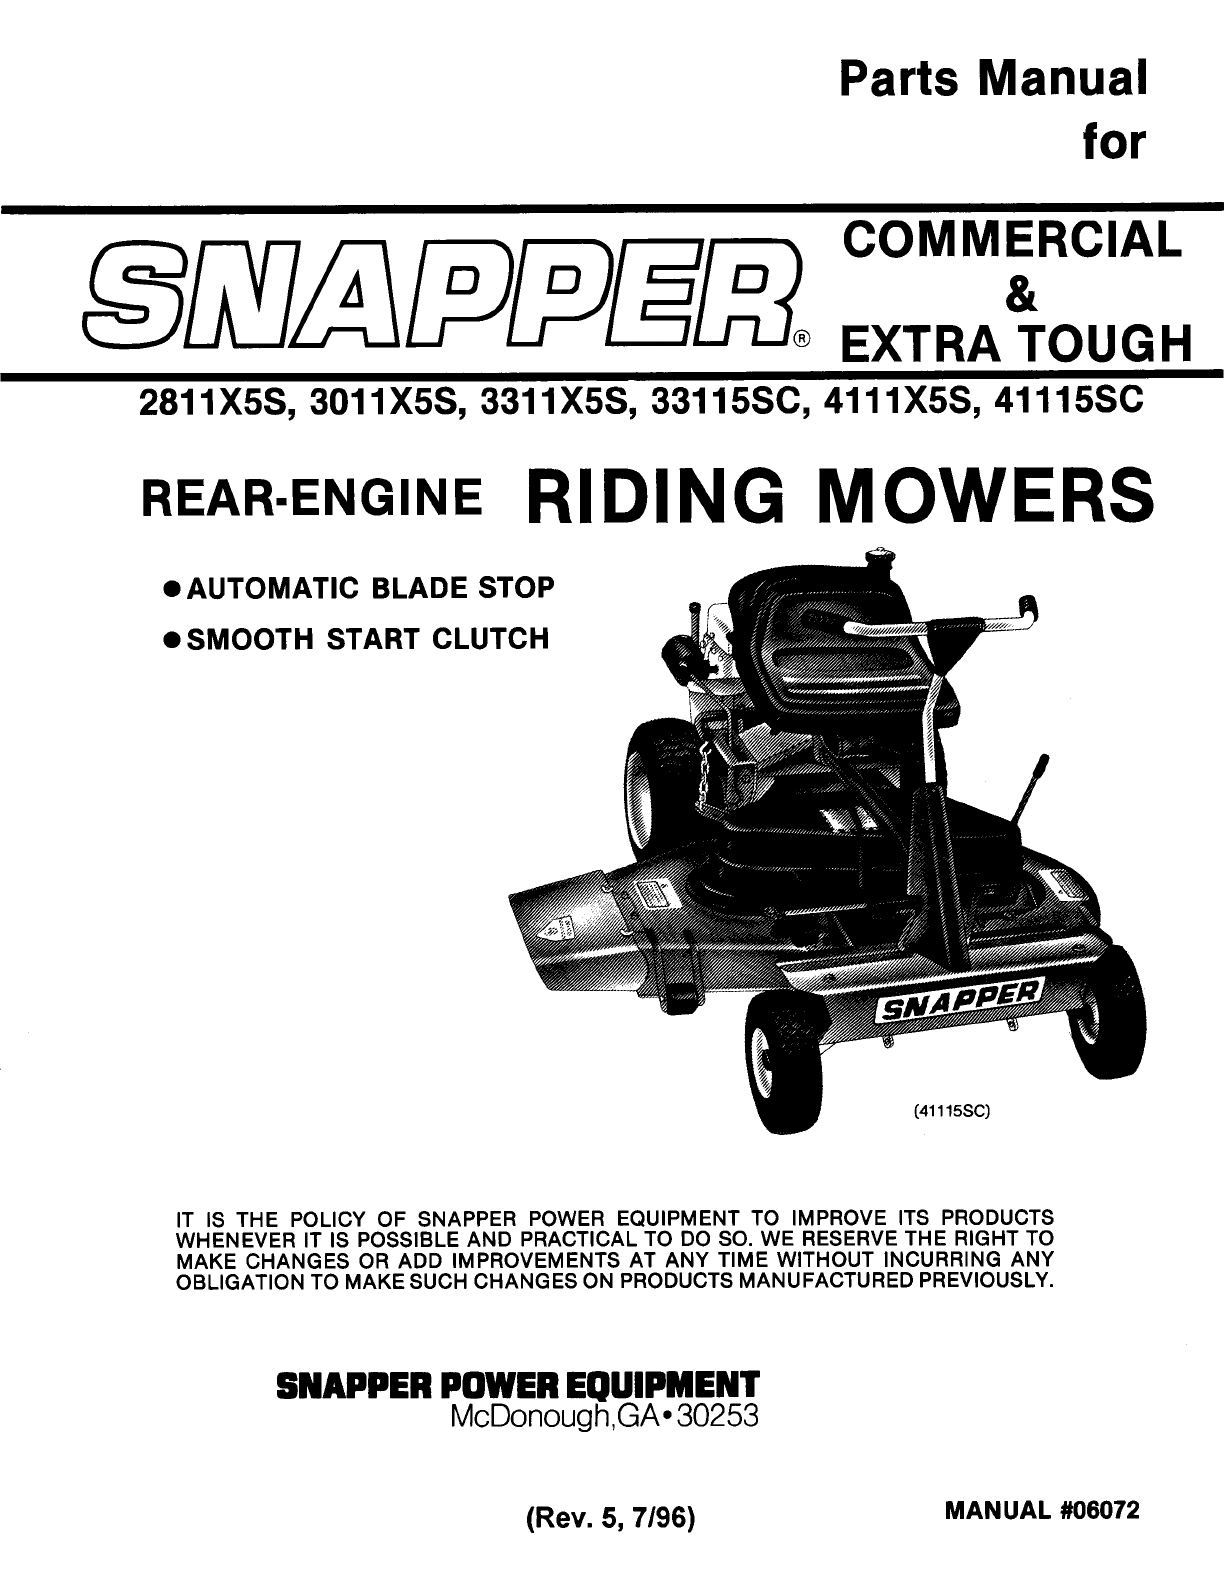 84e07184 30ec 4302 b856 842ecf9c9b3f bg1 snapper lawn mower 2811x5s user guide manualsonline com wiring diagram for rear engine snapper mower at crackthecode.co